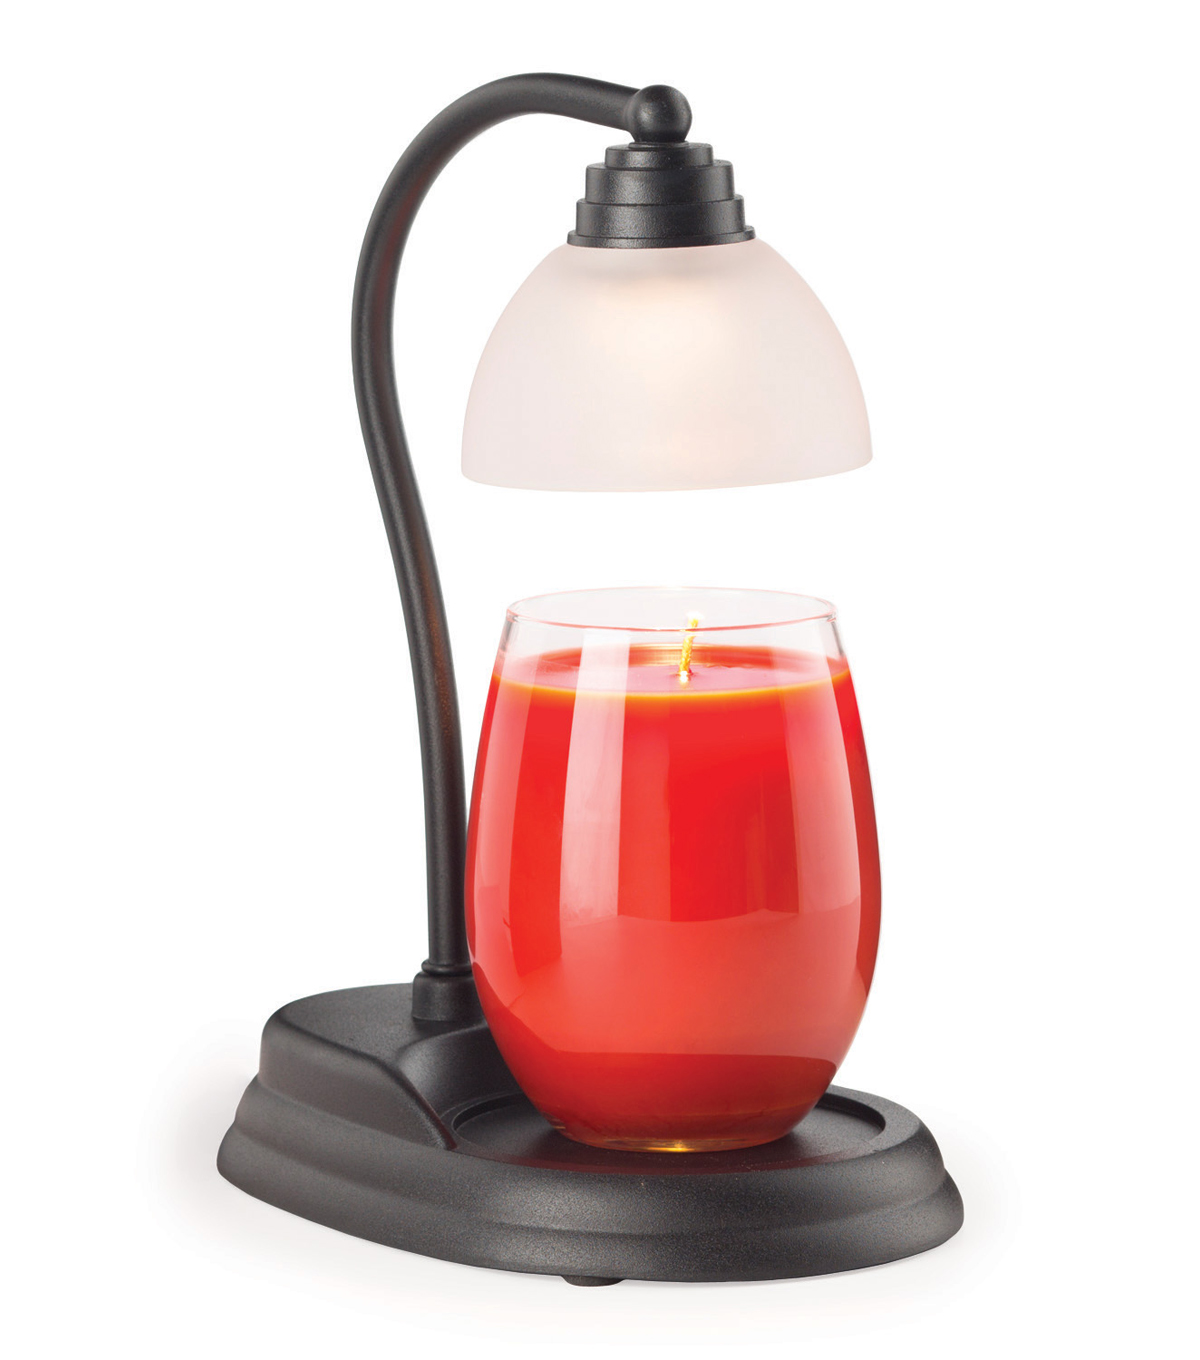 Hudson 43 Candle & Light Aurora Candle Warmer Lamp-Black